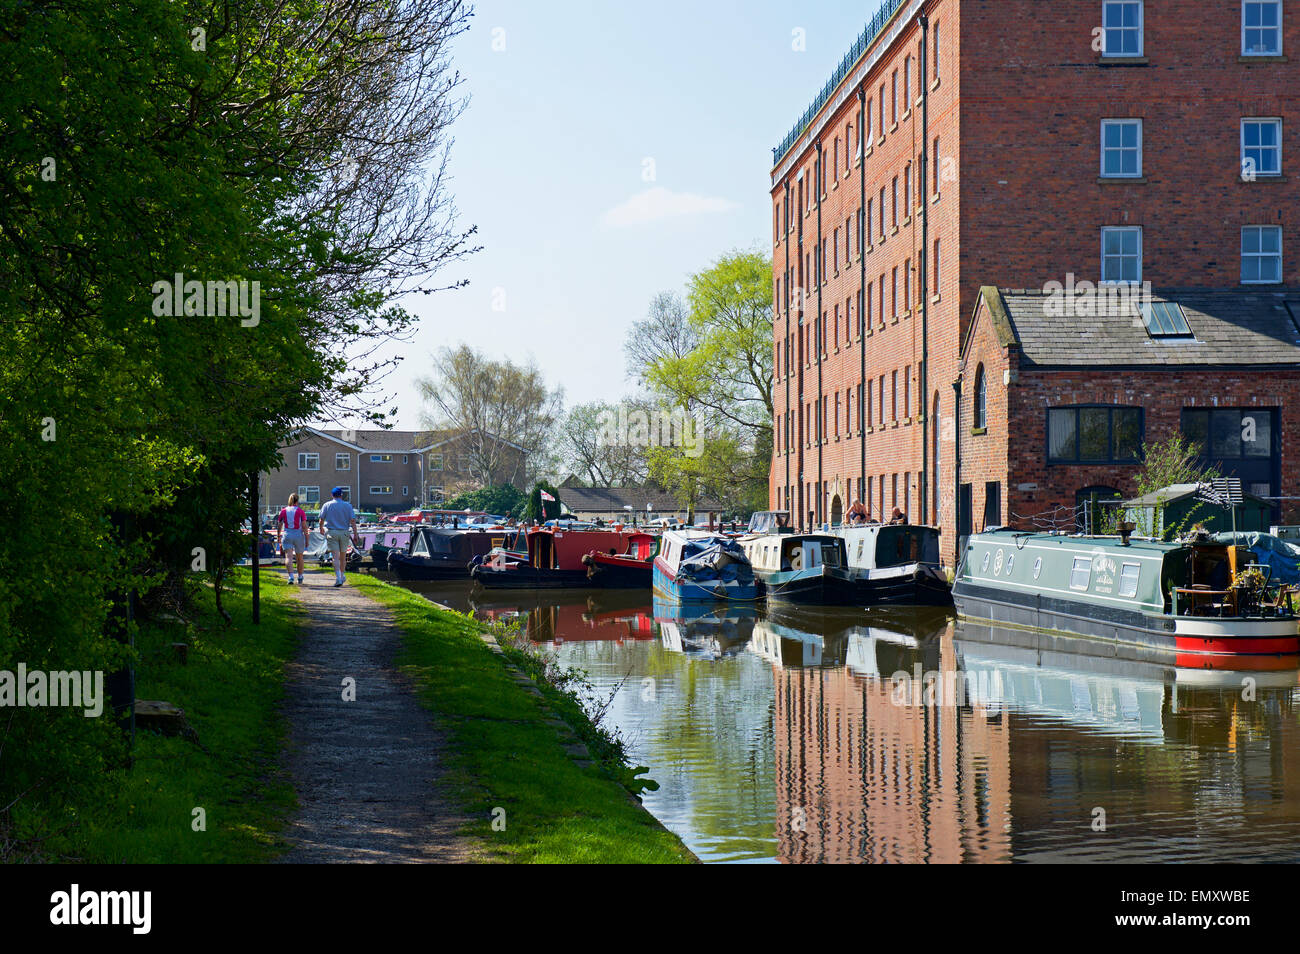 The Macclesfield Canal in Macclesfield, Cheshire, England UK - Stock Image